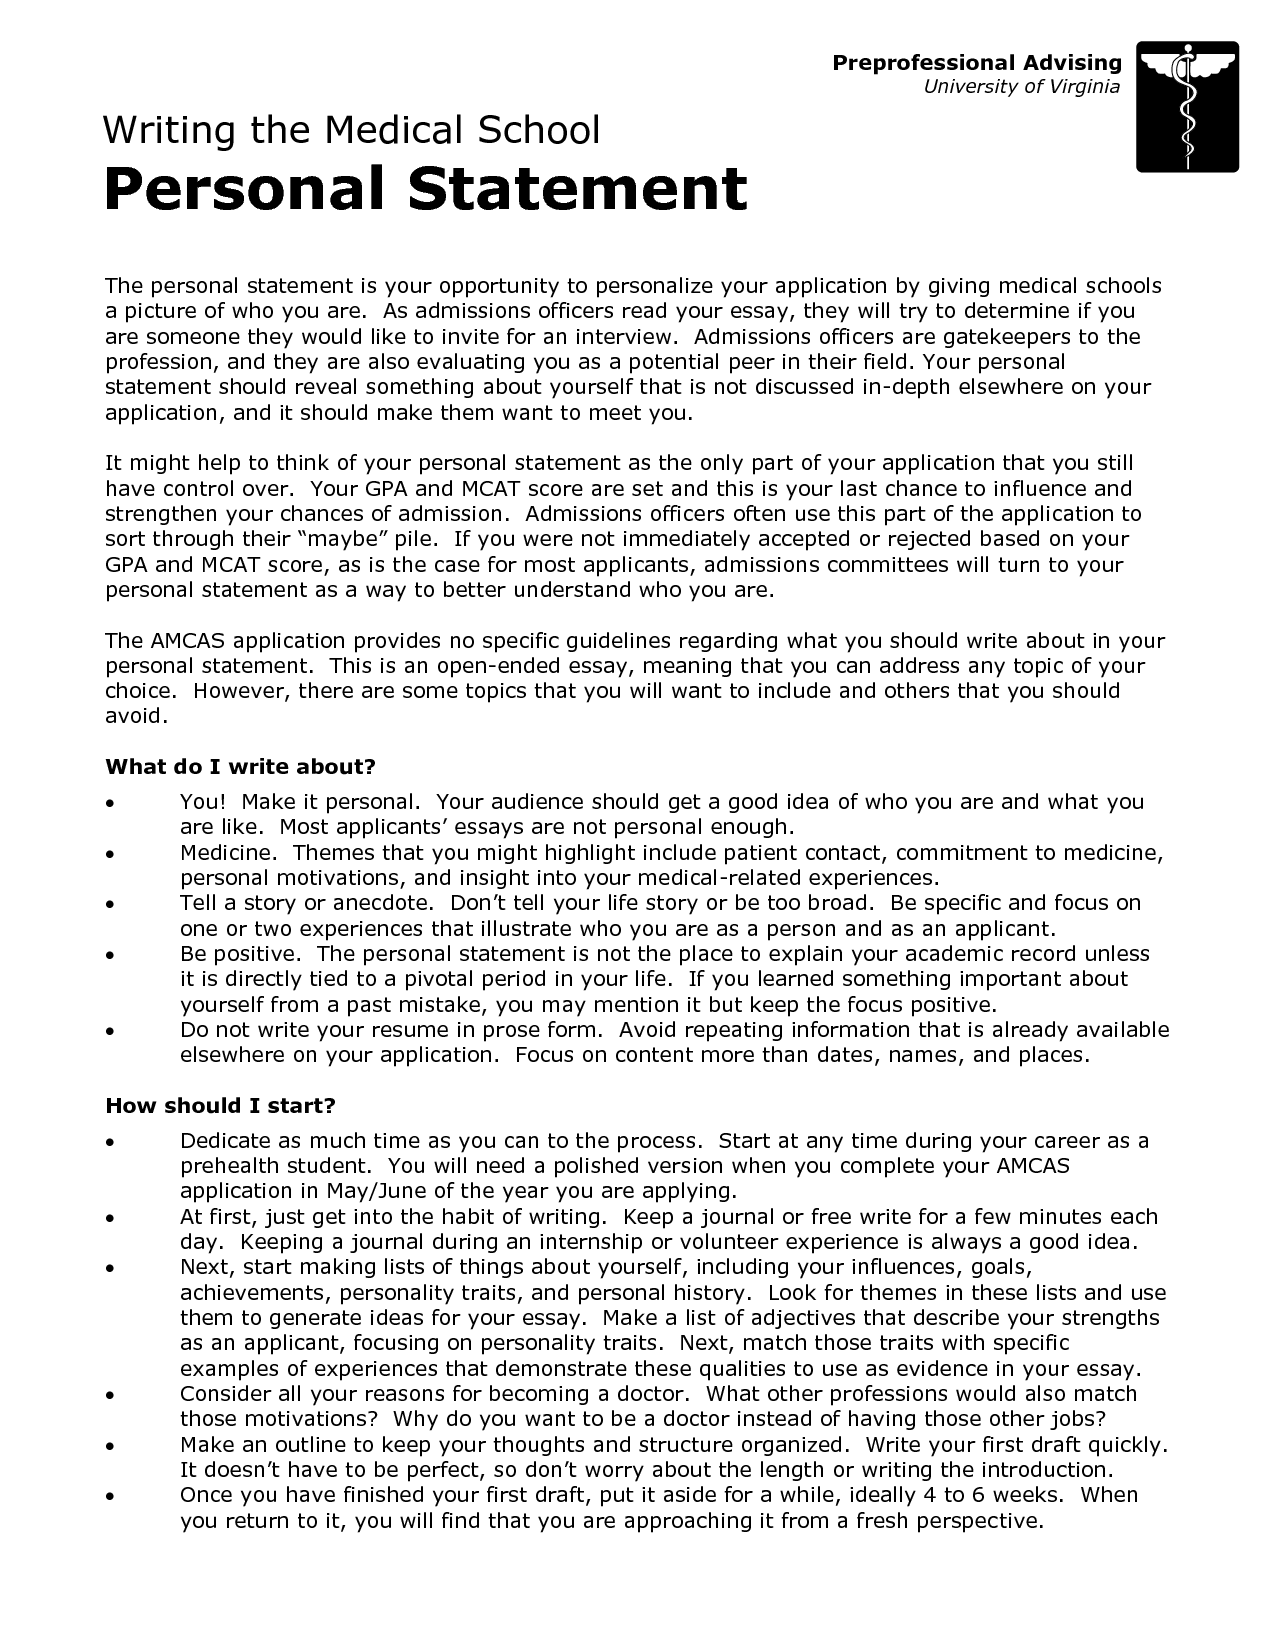 Medical school personal statement model